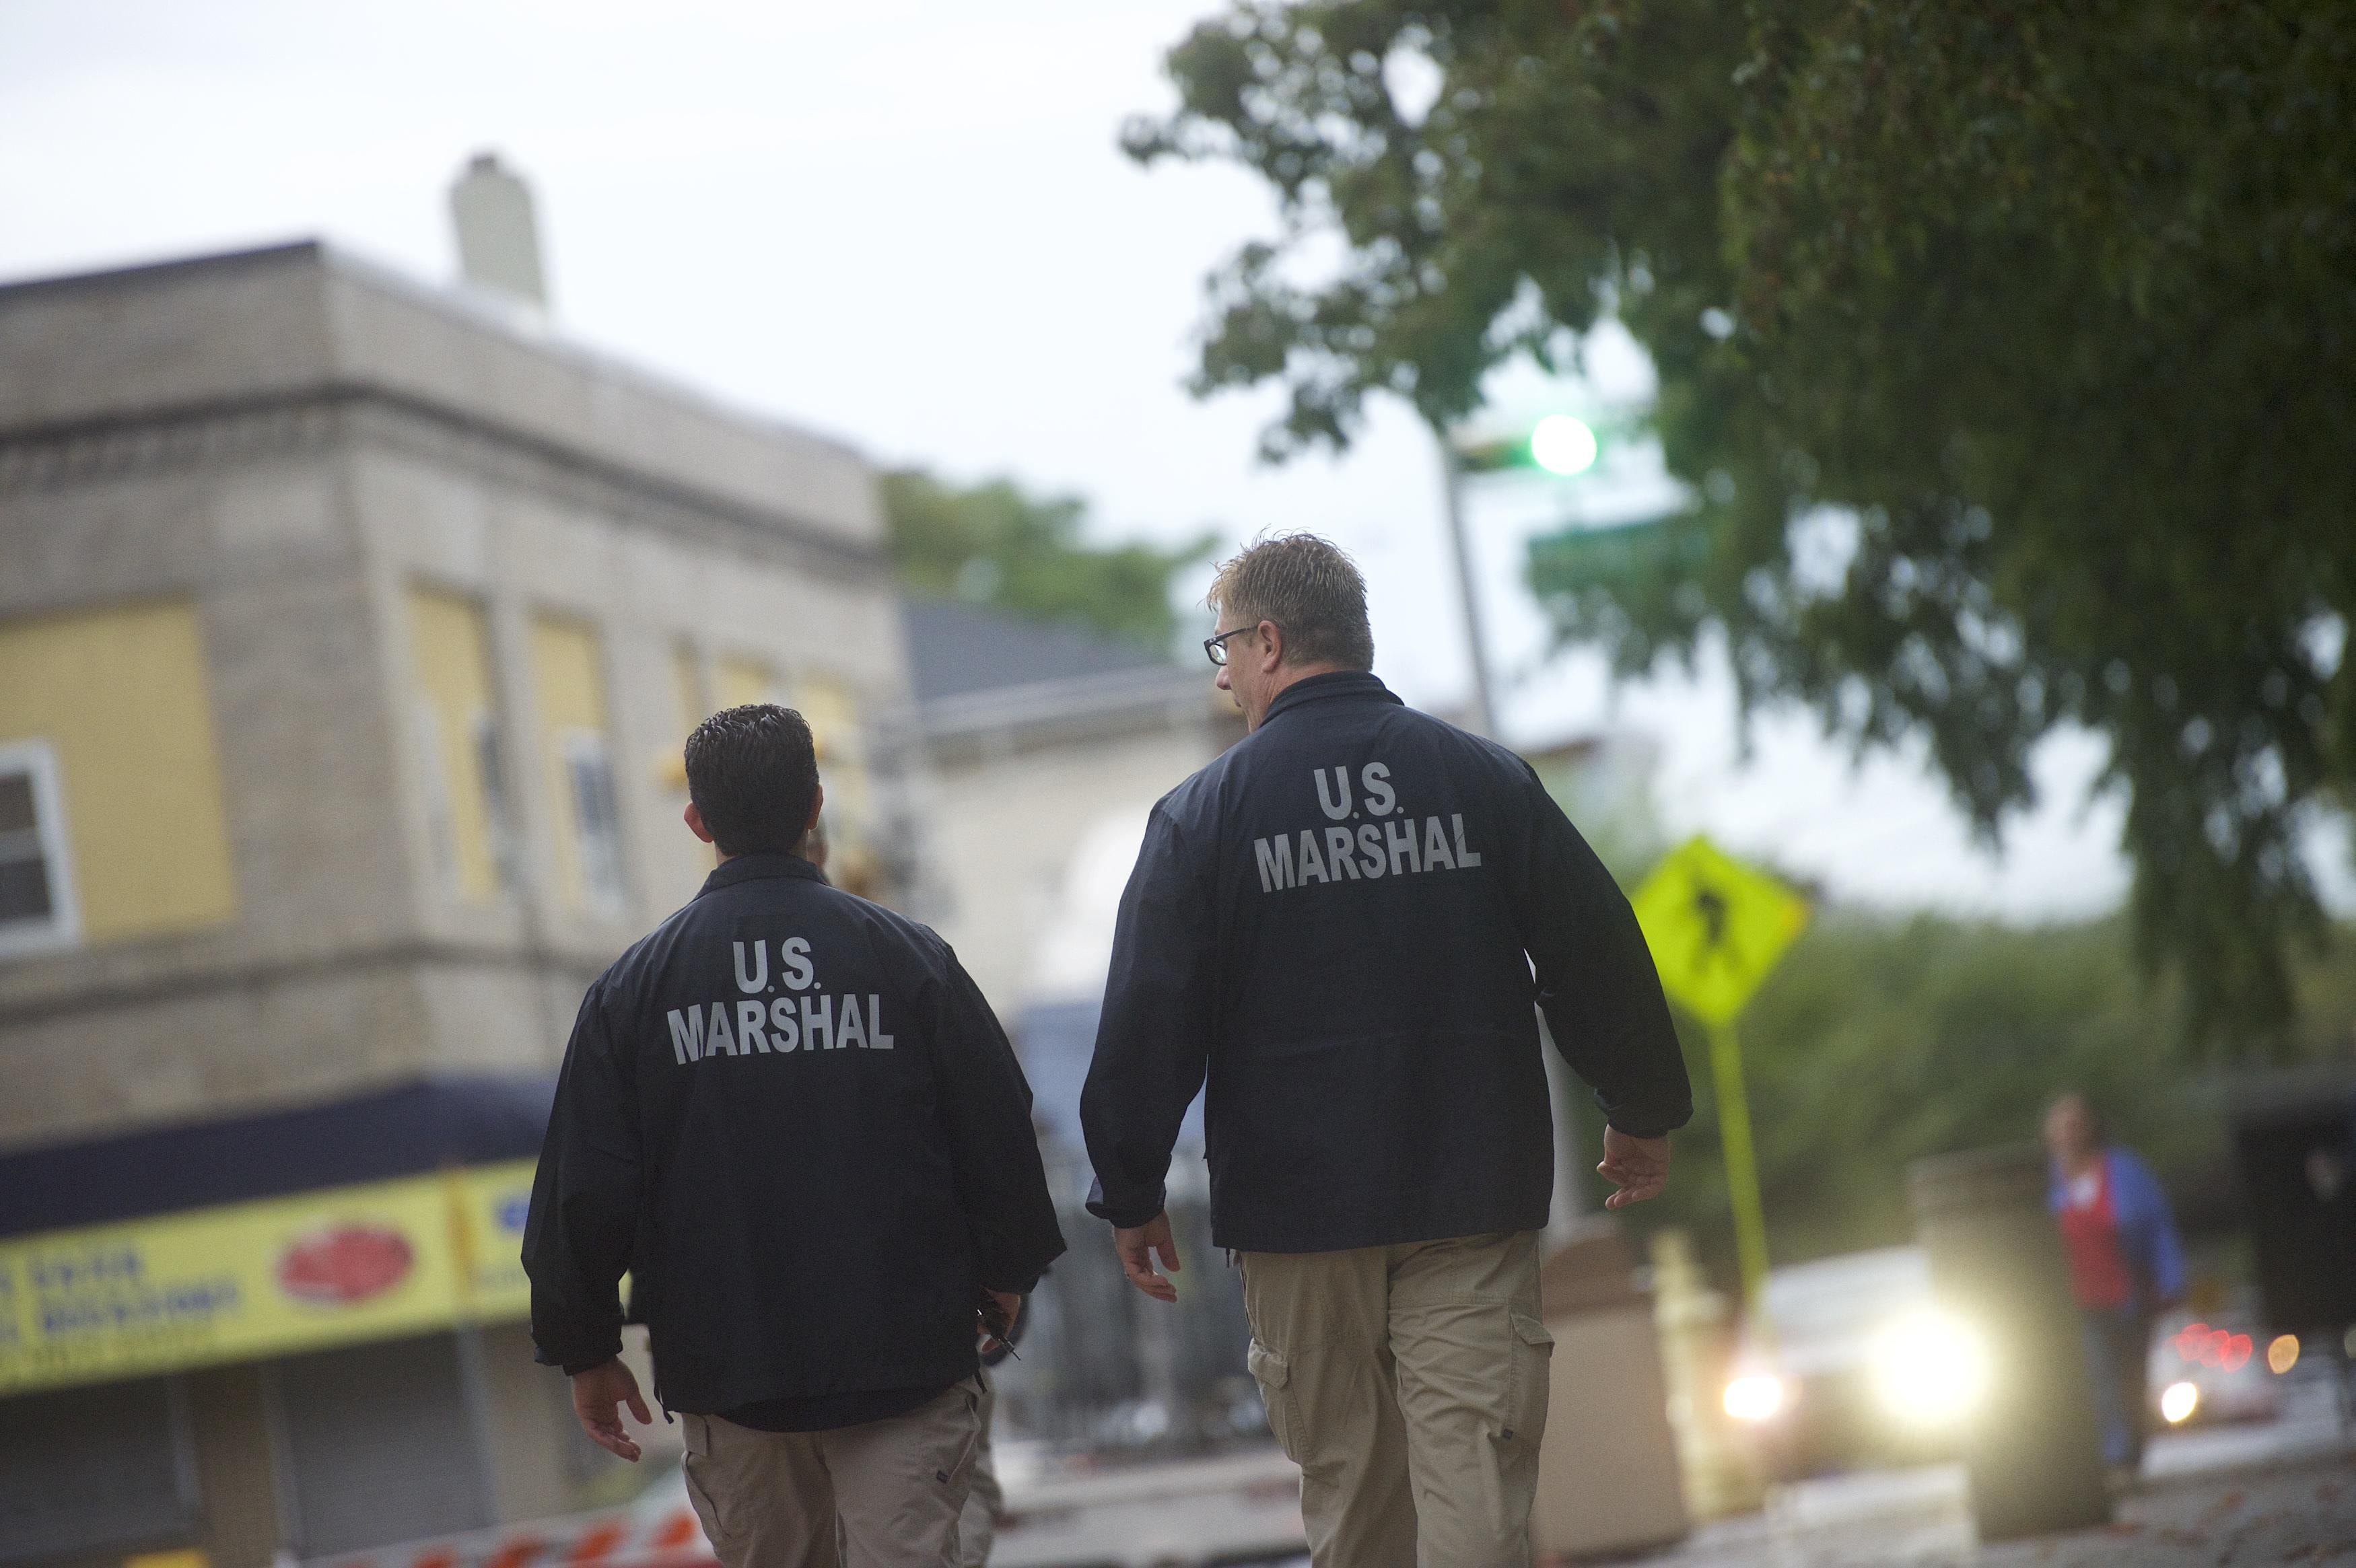 U.S. Marshals monitor activity outside a courthouse.